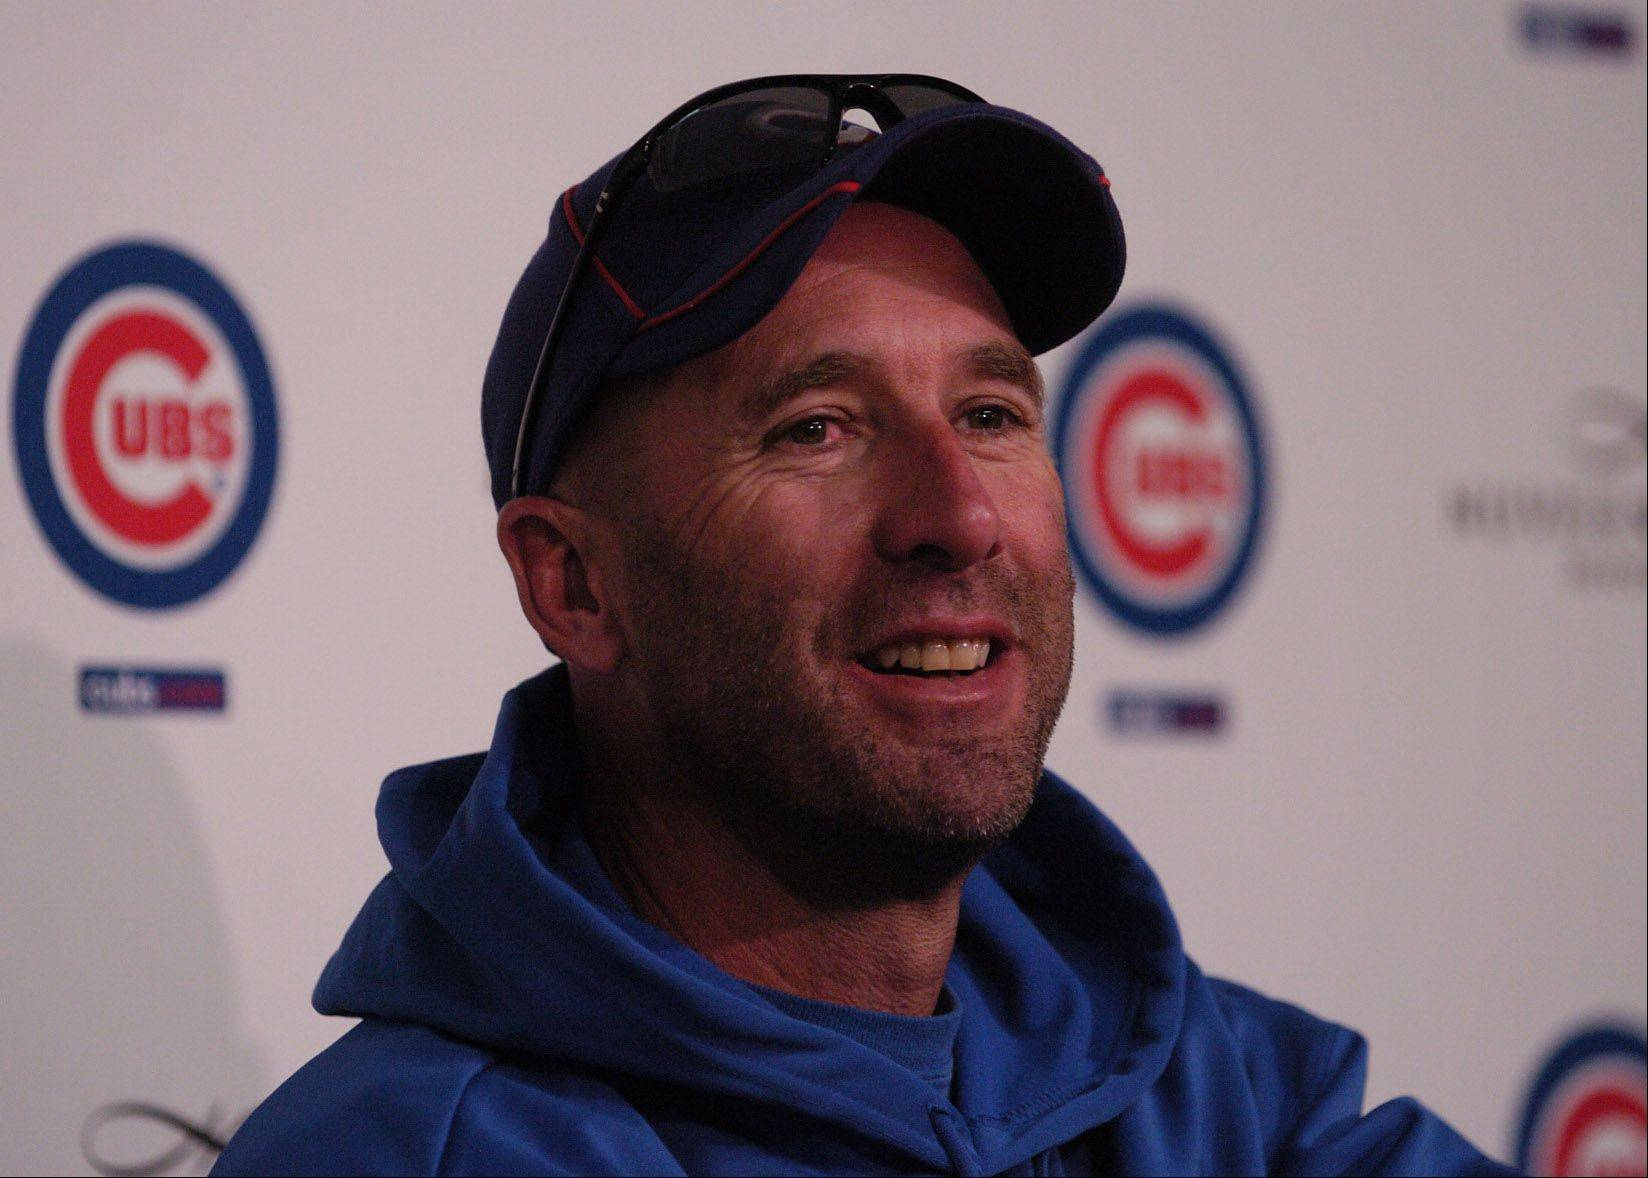 New manager Dale Sveum cracks a smile during a press conference.